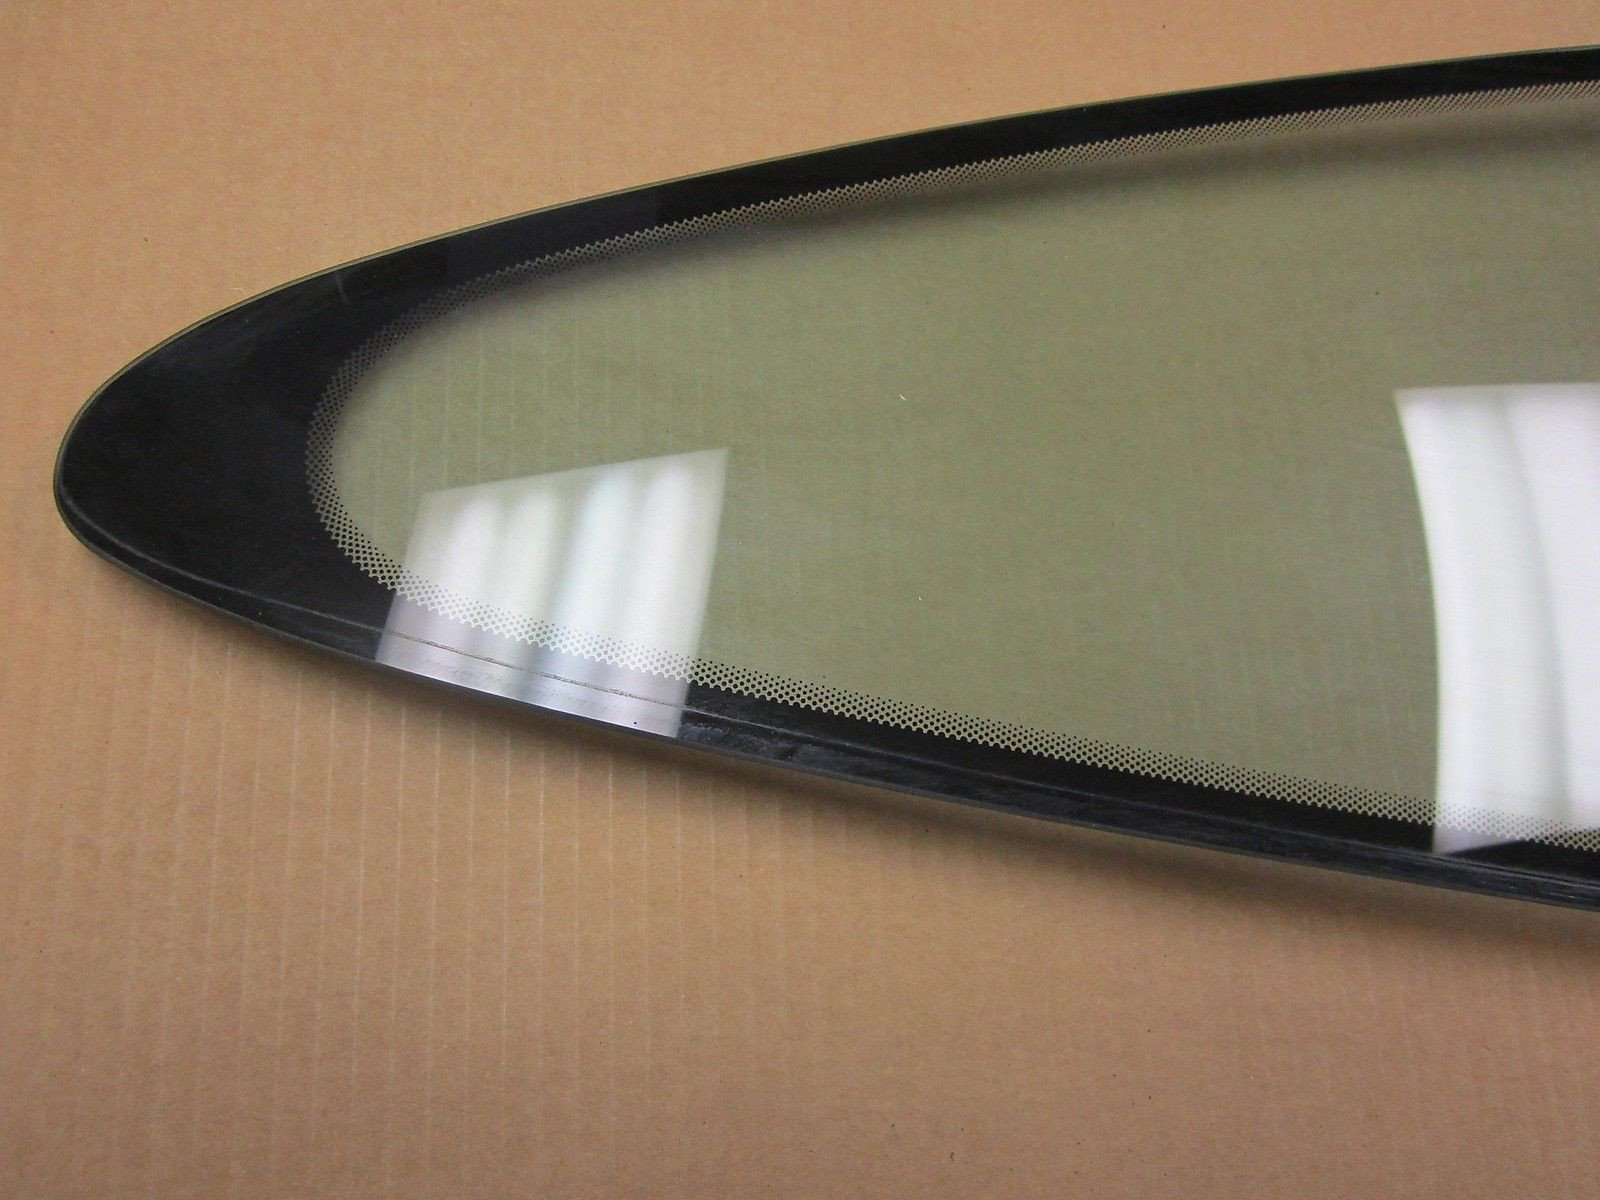 2001 Porsche 911 Carrera 01 Coupe 996 Passenger Rear Quarter Window Glass 28,883